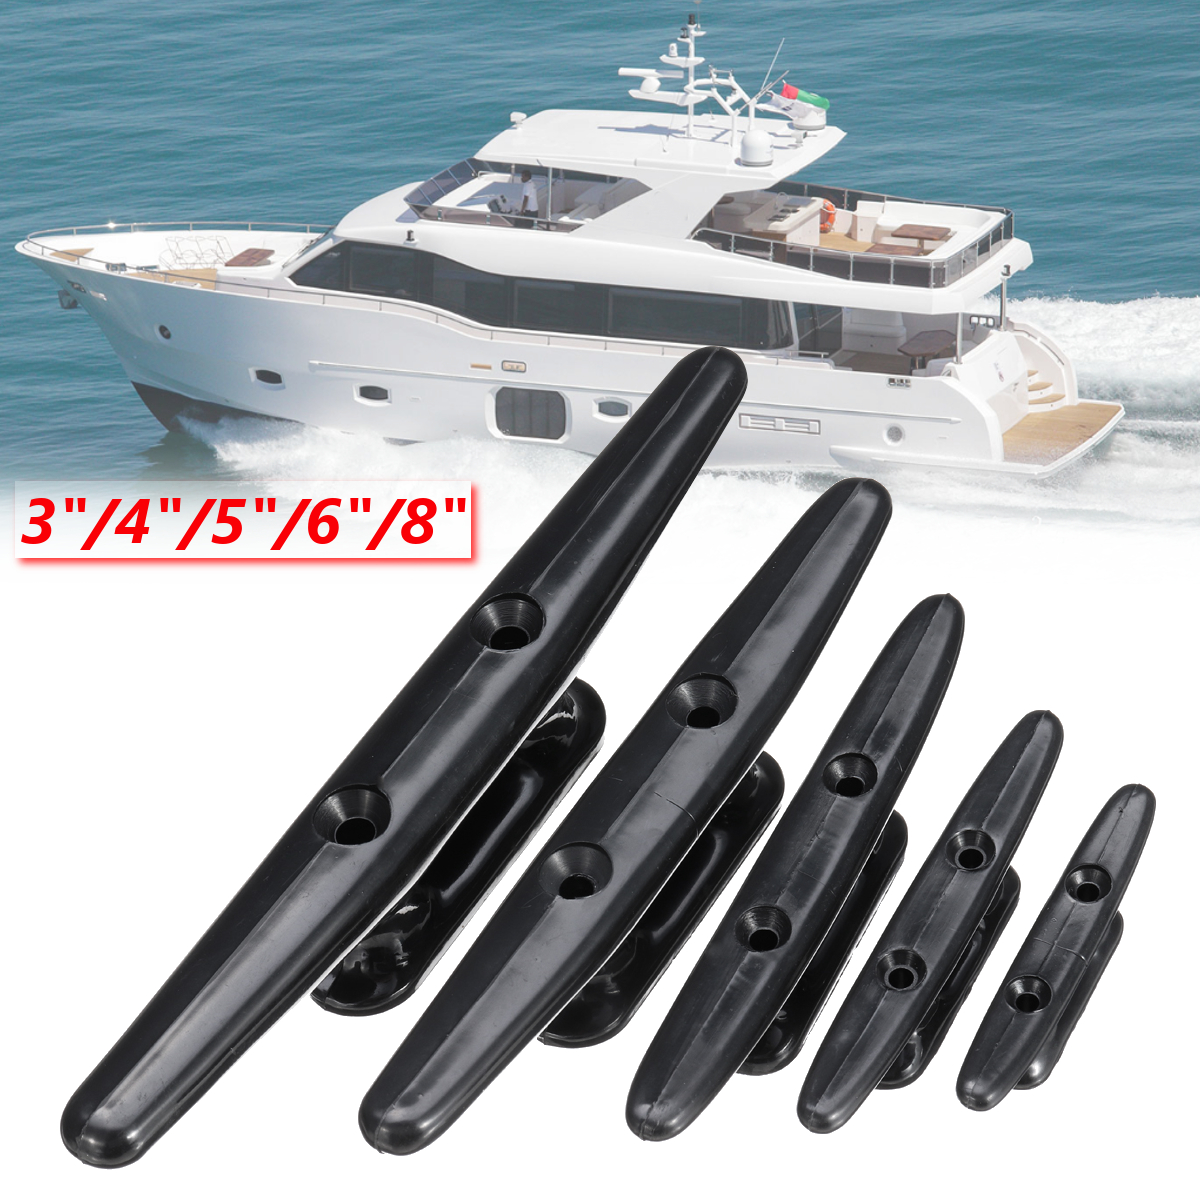 """Low Flat Cleat Hardware Nylon Plastic For Marine Boat Yacht Deck Line Rope Tie 3"""" 4"""" 5"""" 6"""" 8"""" Boat Accessories"""